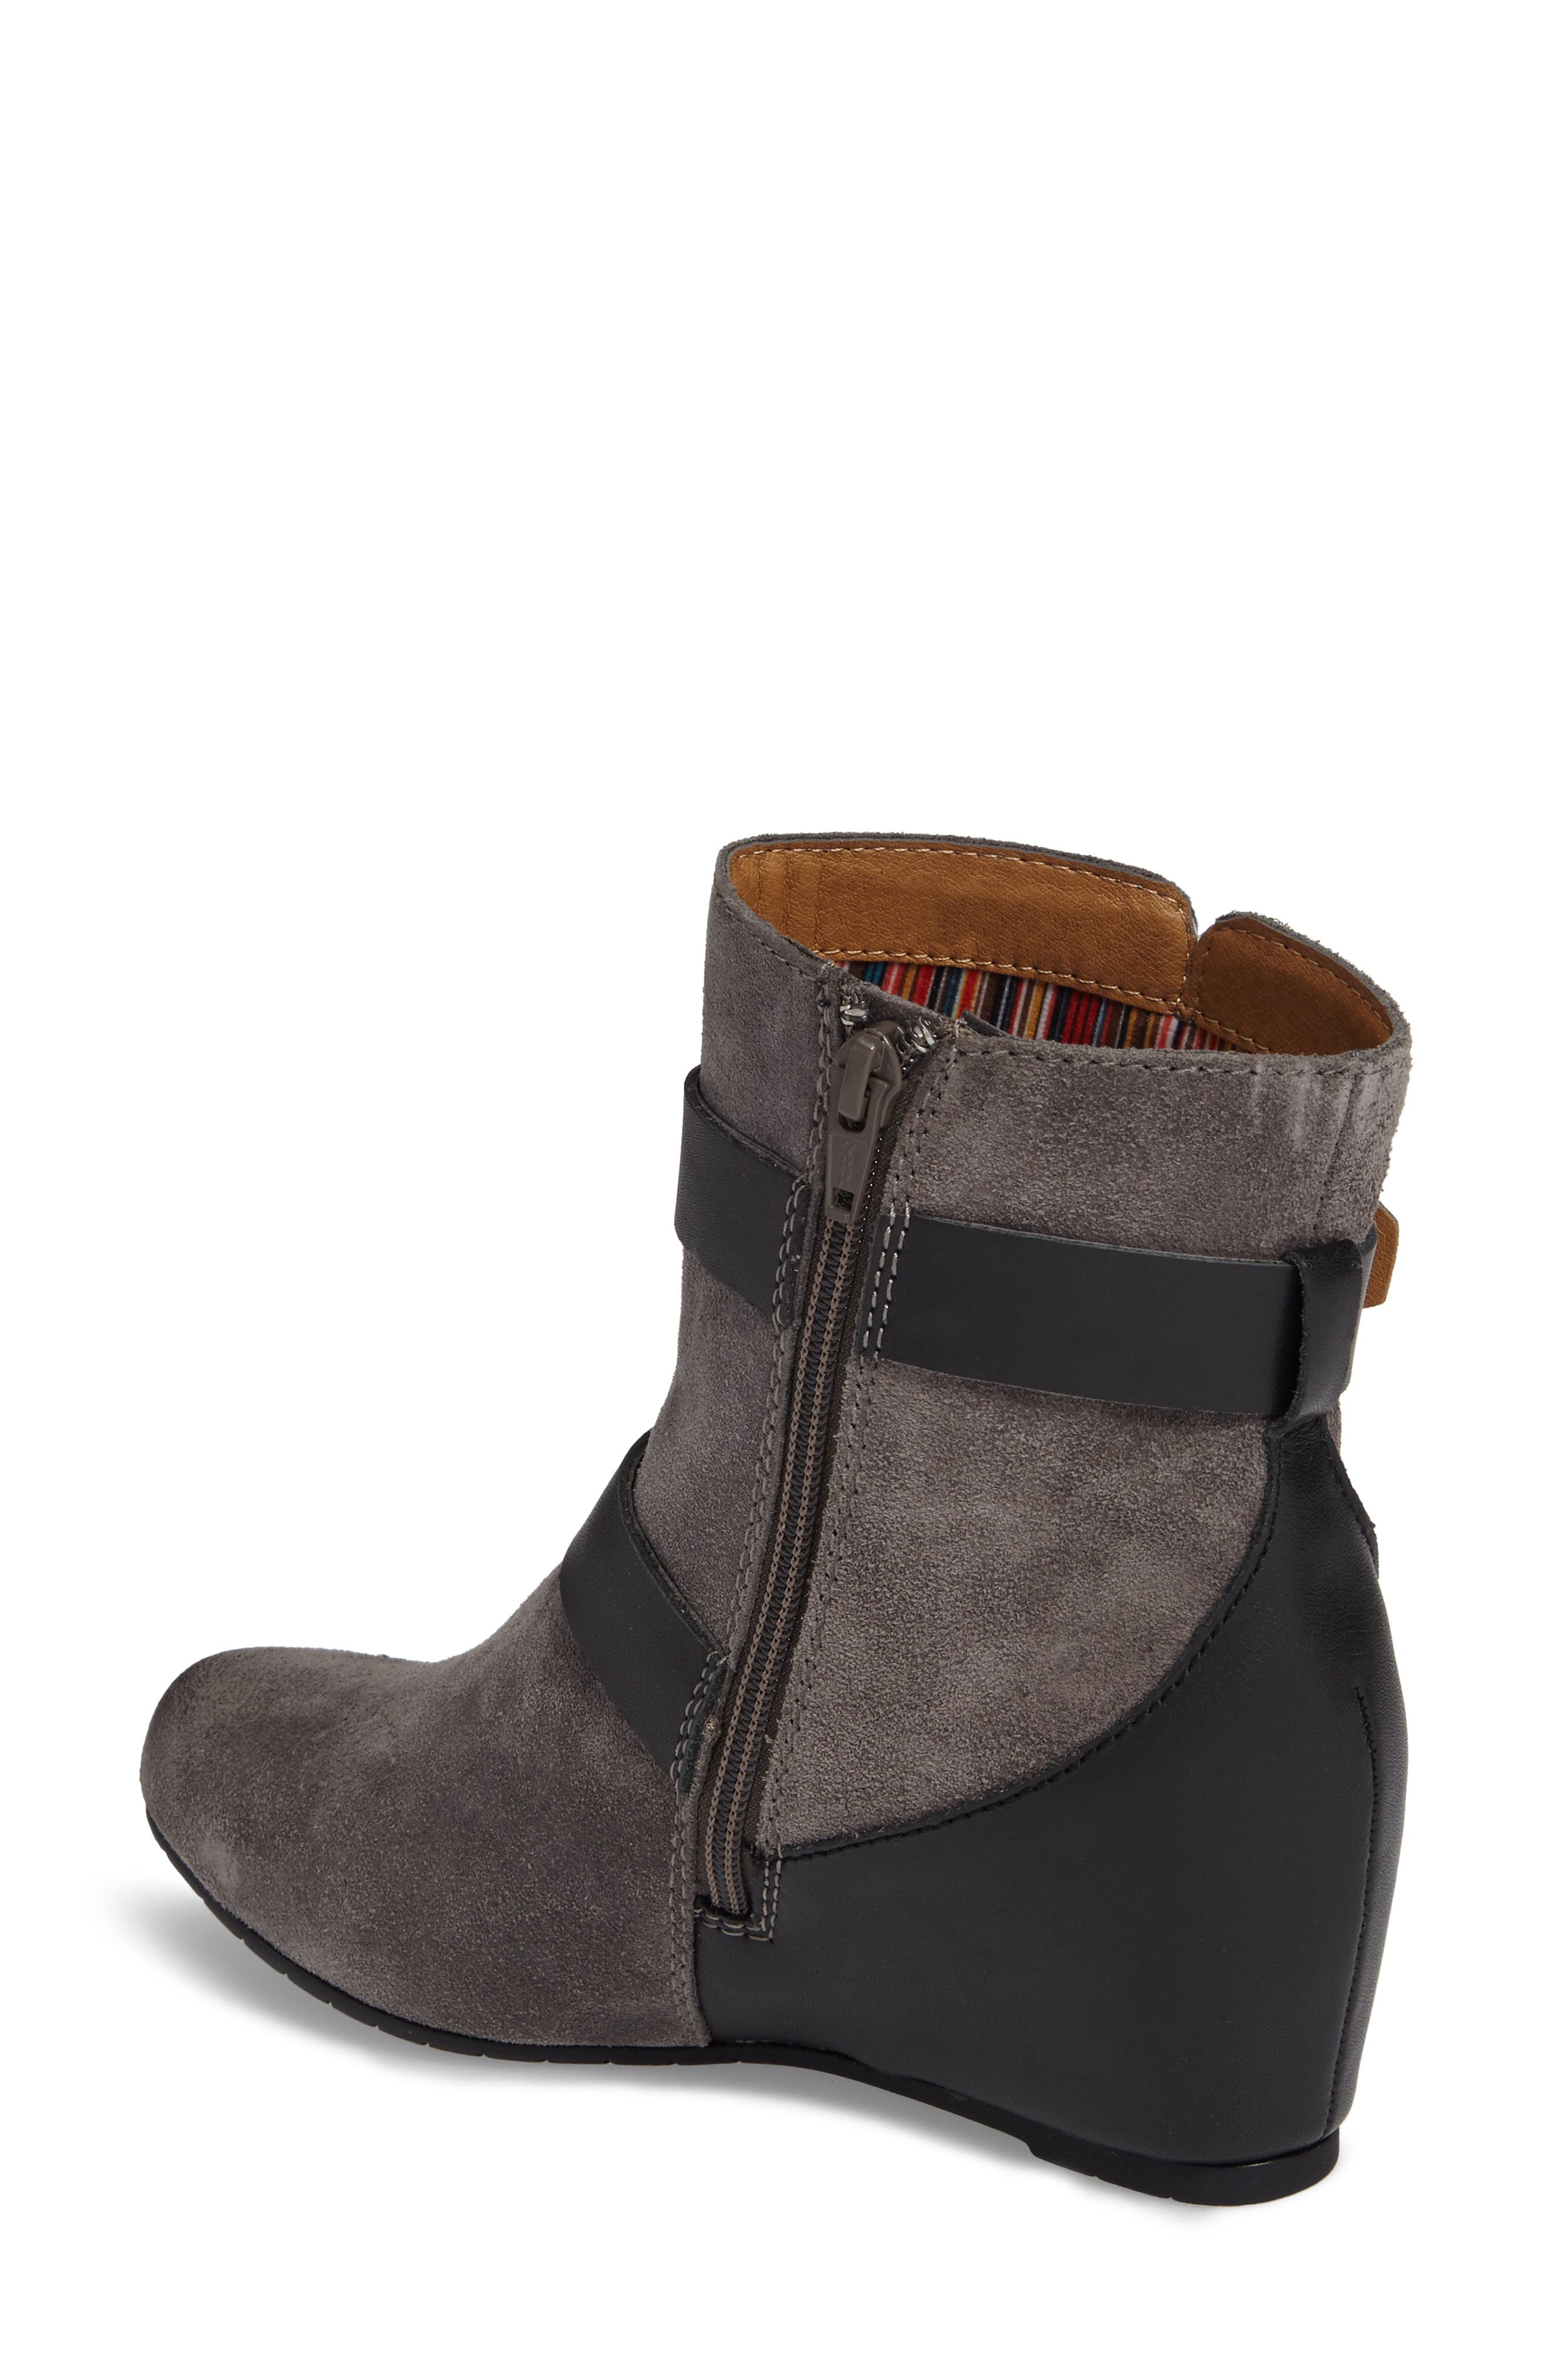 Ramika Wedge Bootie,                             Alternate thumbnail 5, color,